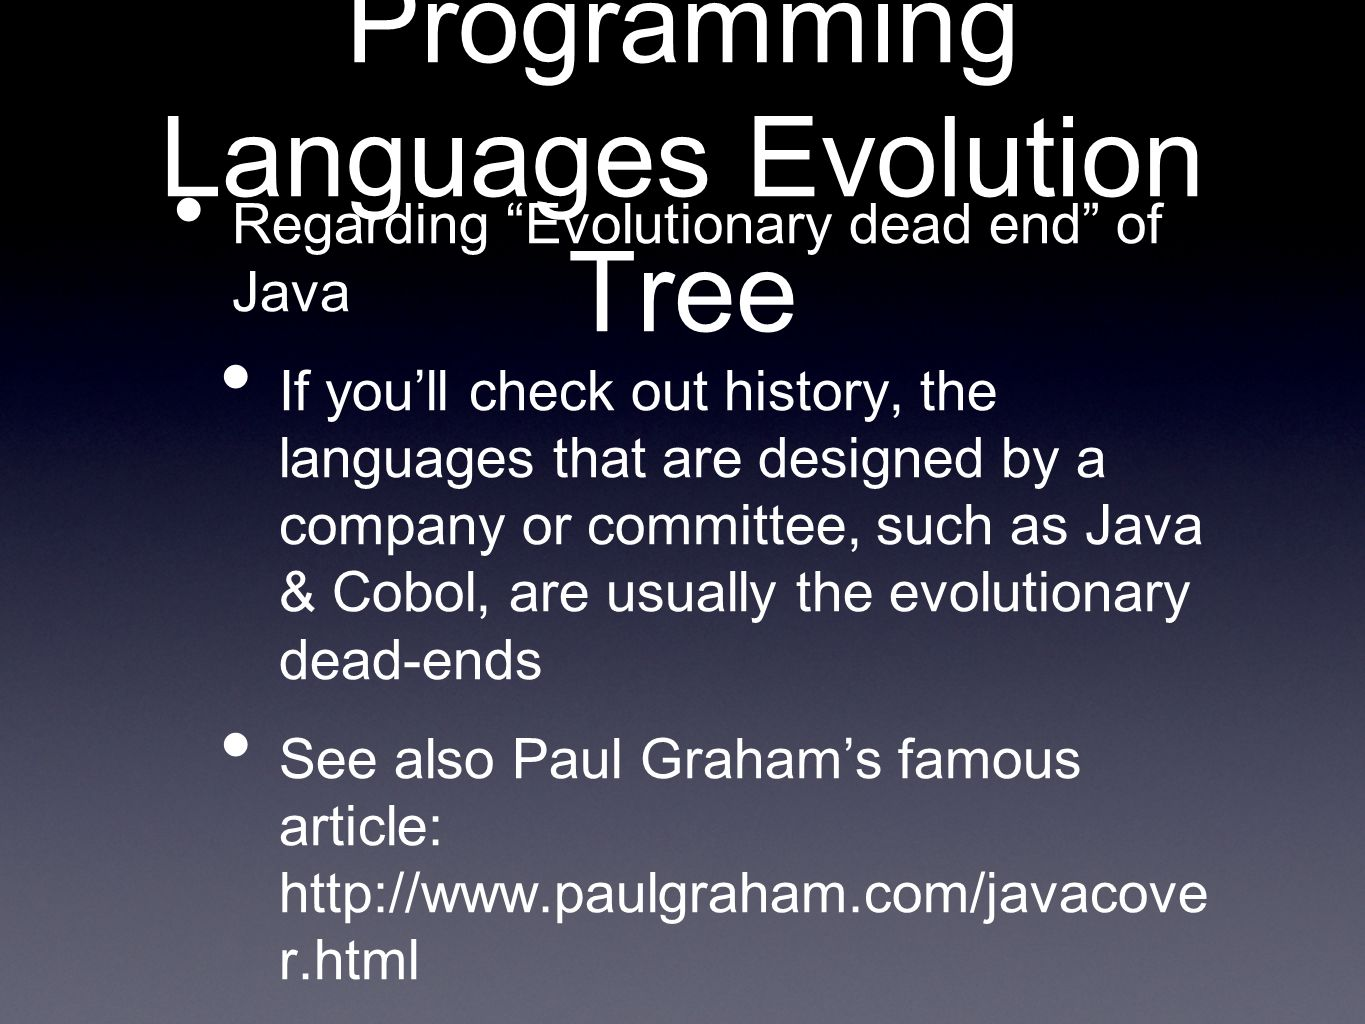 Programming Languages Evolution Tree Regarding Evolutionary dead end of Java If youll check out history, the languages that are designed by a company or committee, such as Java & Cobol, are usually the evolutionary dead-ends See also Paul Grahams famous article: http://www.paulgraham.com/javacove r.html